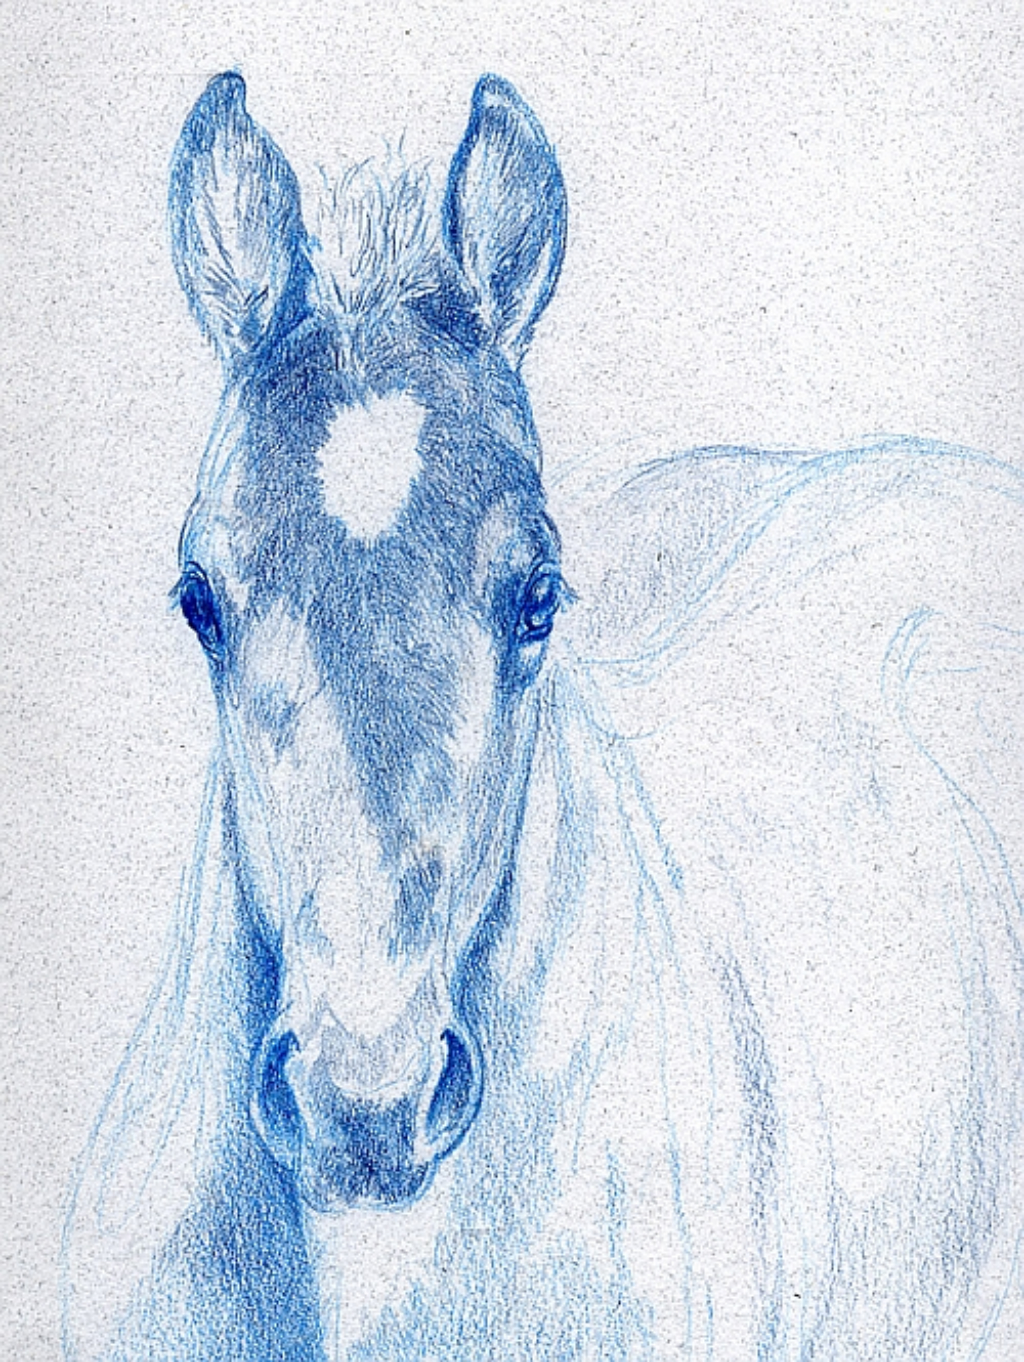 Do I Need a Full Set of Colored Pencils - Foal Study